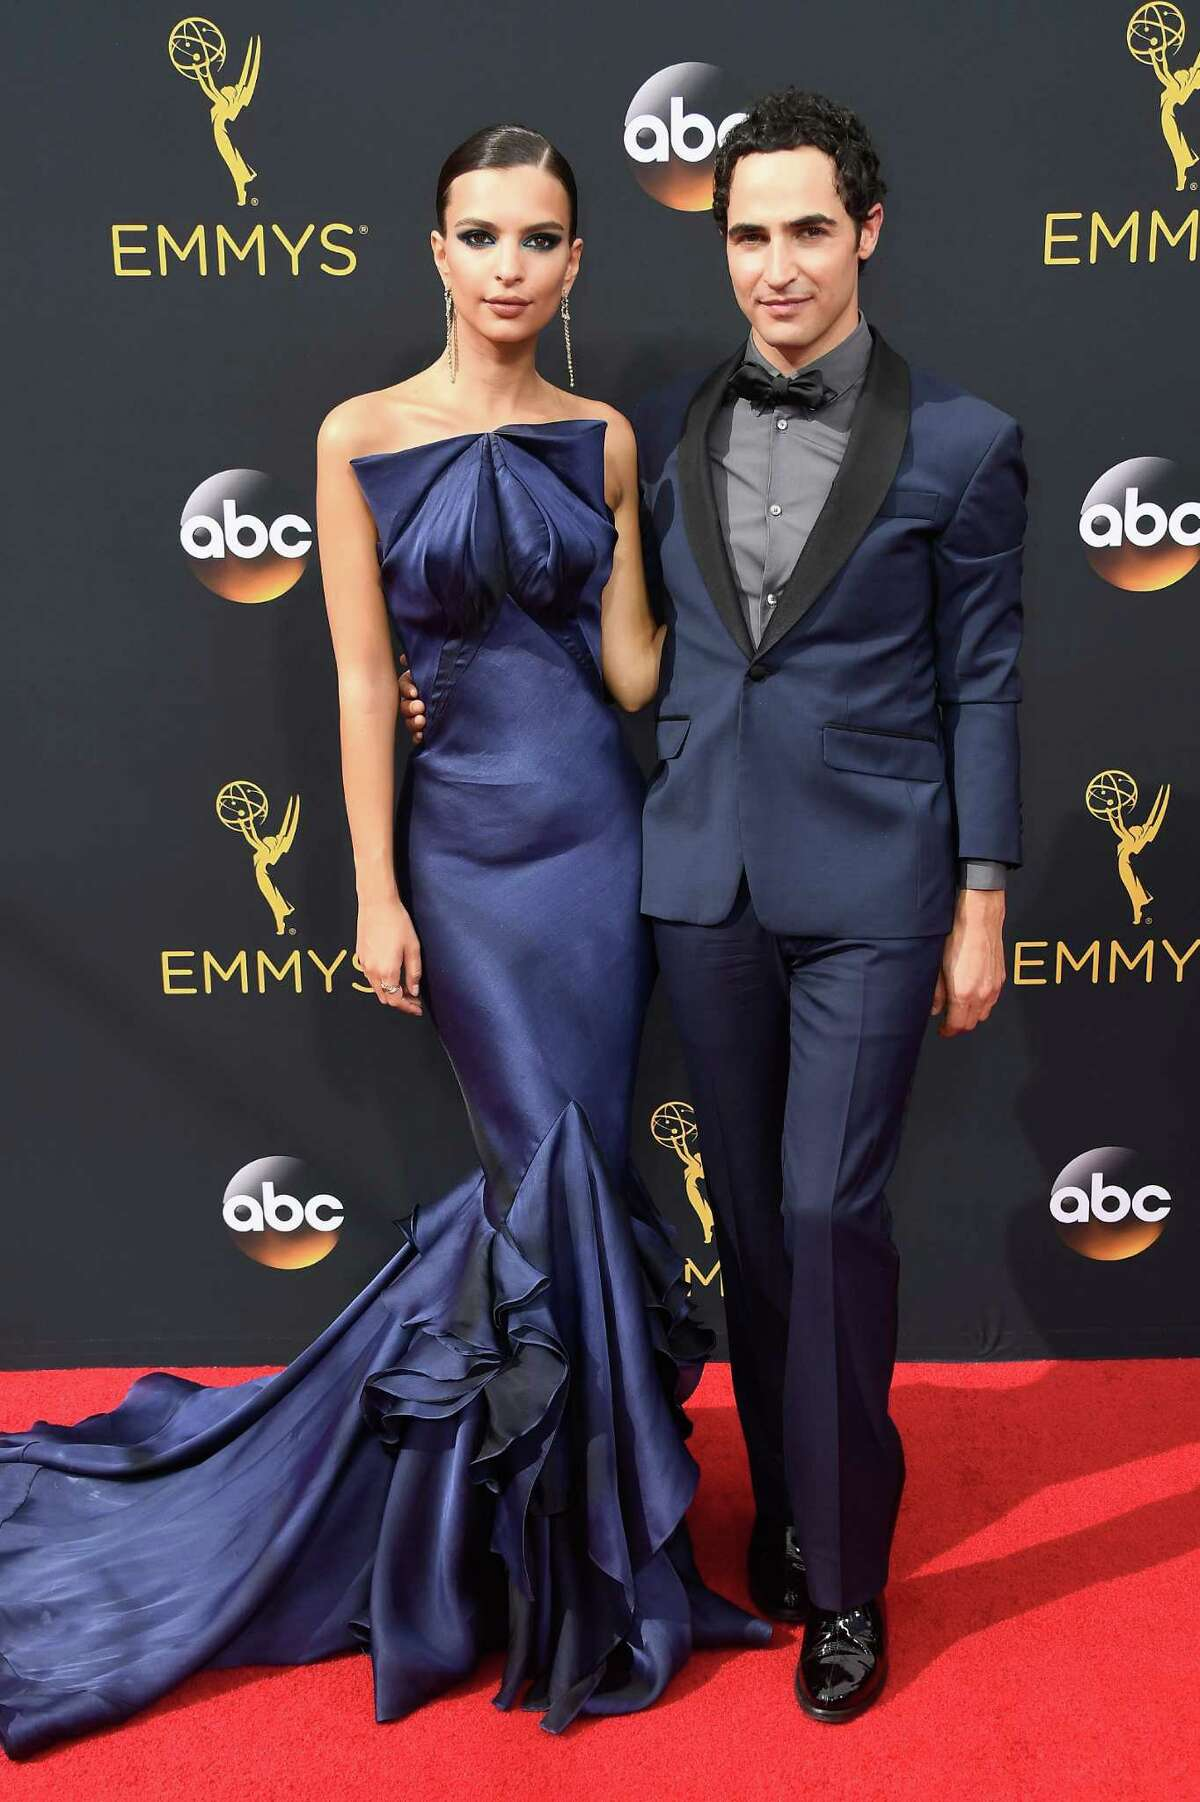 BEST : Emily Ratajkowski with designer Zac Posen. She looked stunning, but together they are like blue-satin salt-and-pepper shakers. Seriously.